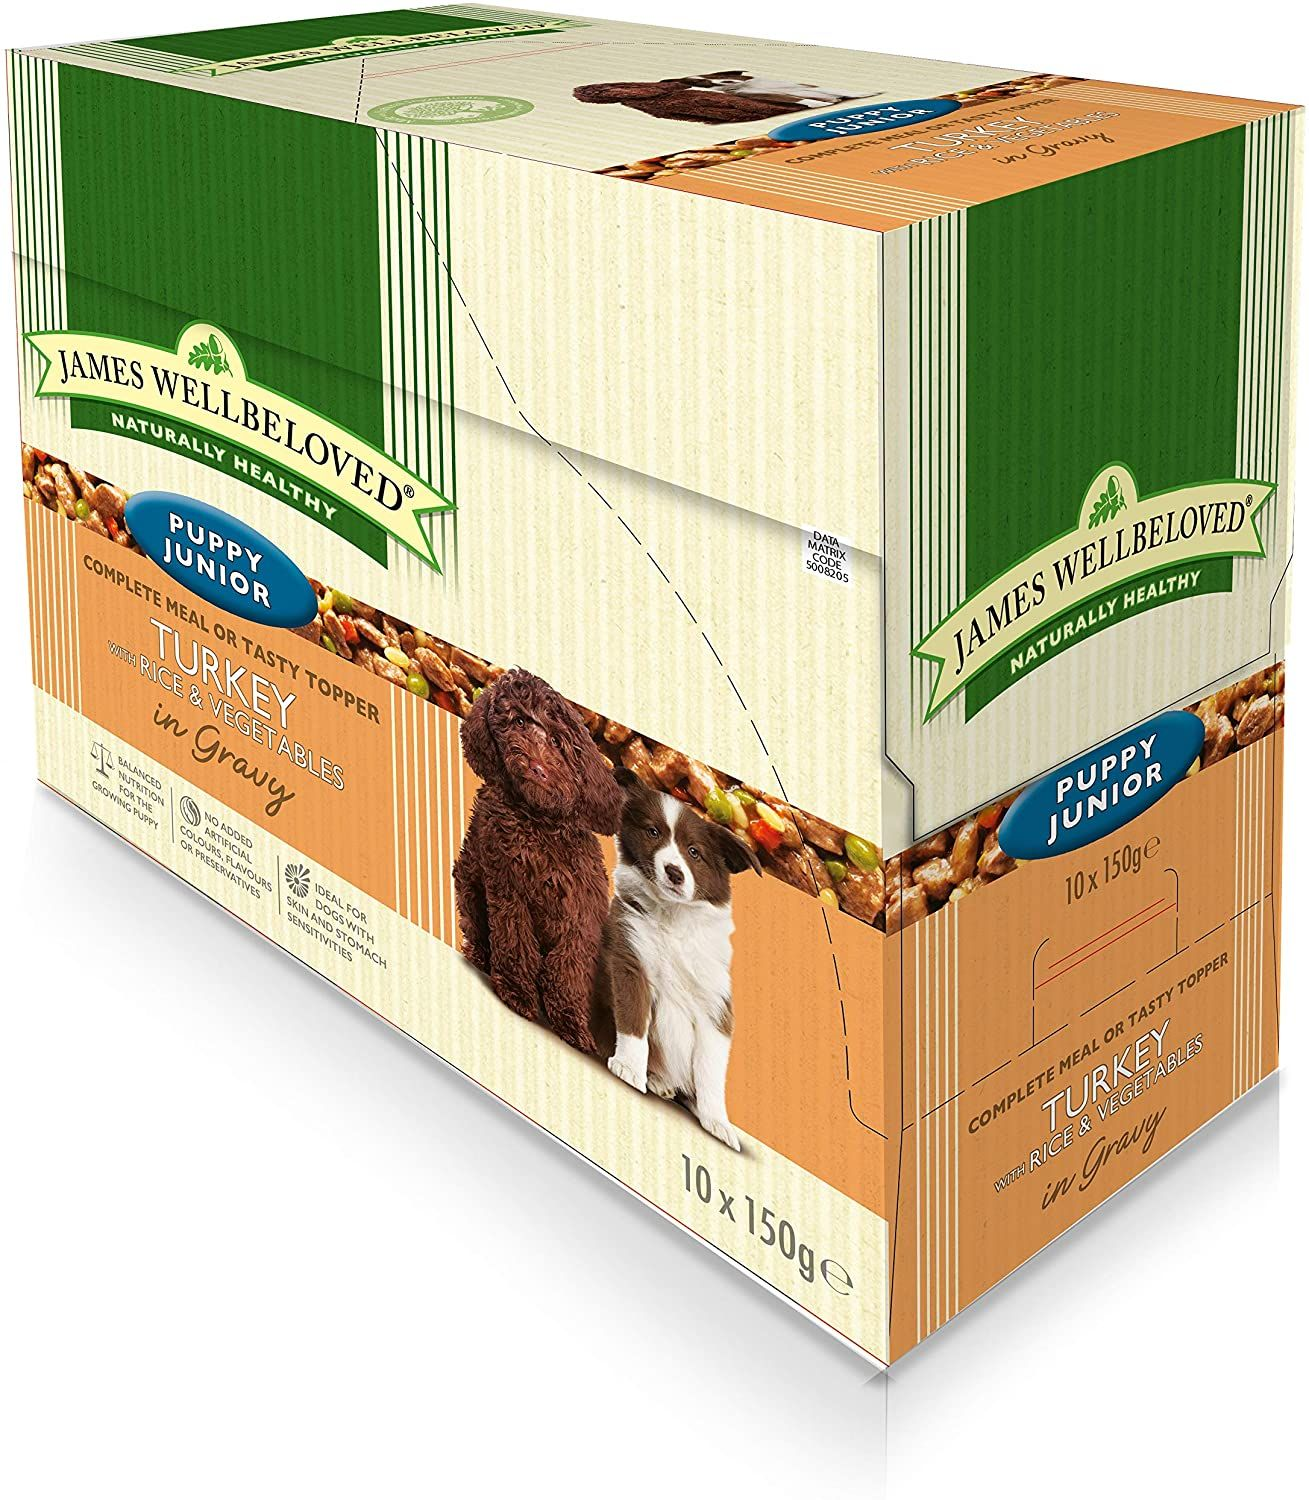 James Wellbeloved Puppy Pouch Turkey With Rice And Vegetables 10 X 150 G Pet Supplies Am Amazon Affiliate Link C In 2020 Dog Food Recipes Puppy Food Healthy Gravy